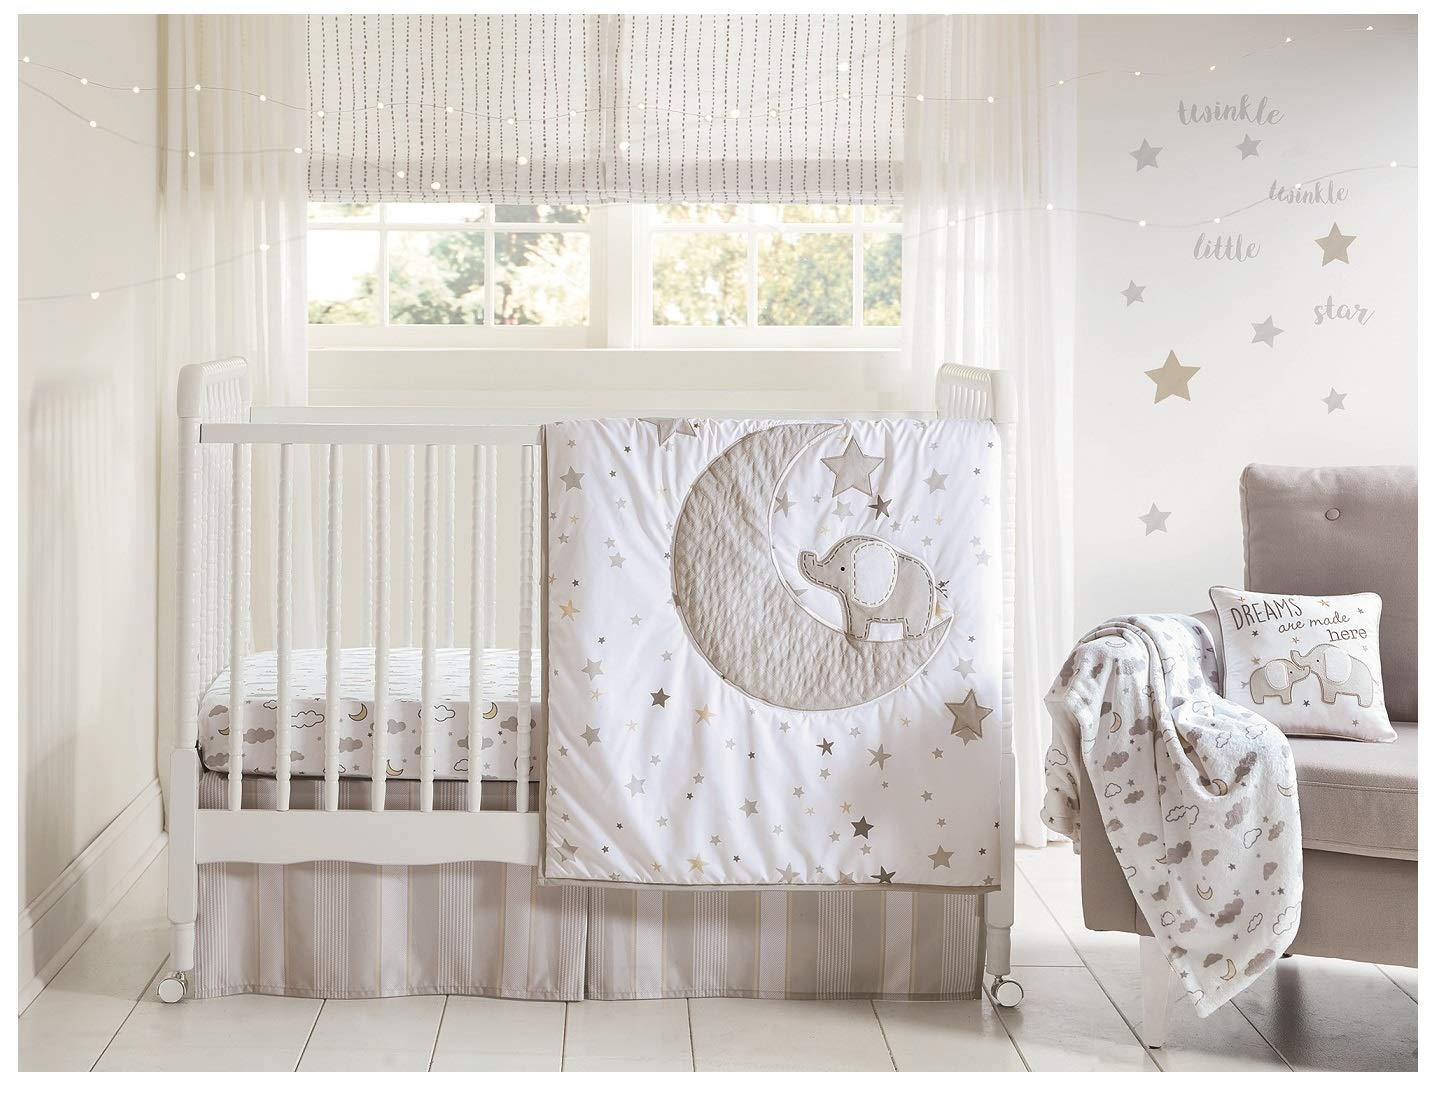 Embroidered Crib Bedding Free Embroidery Patterns